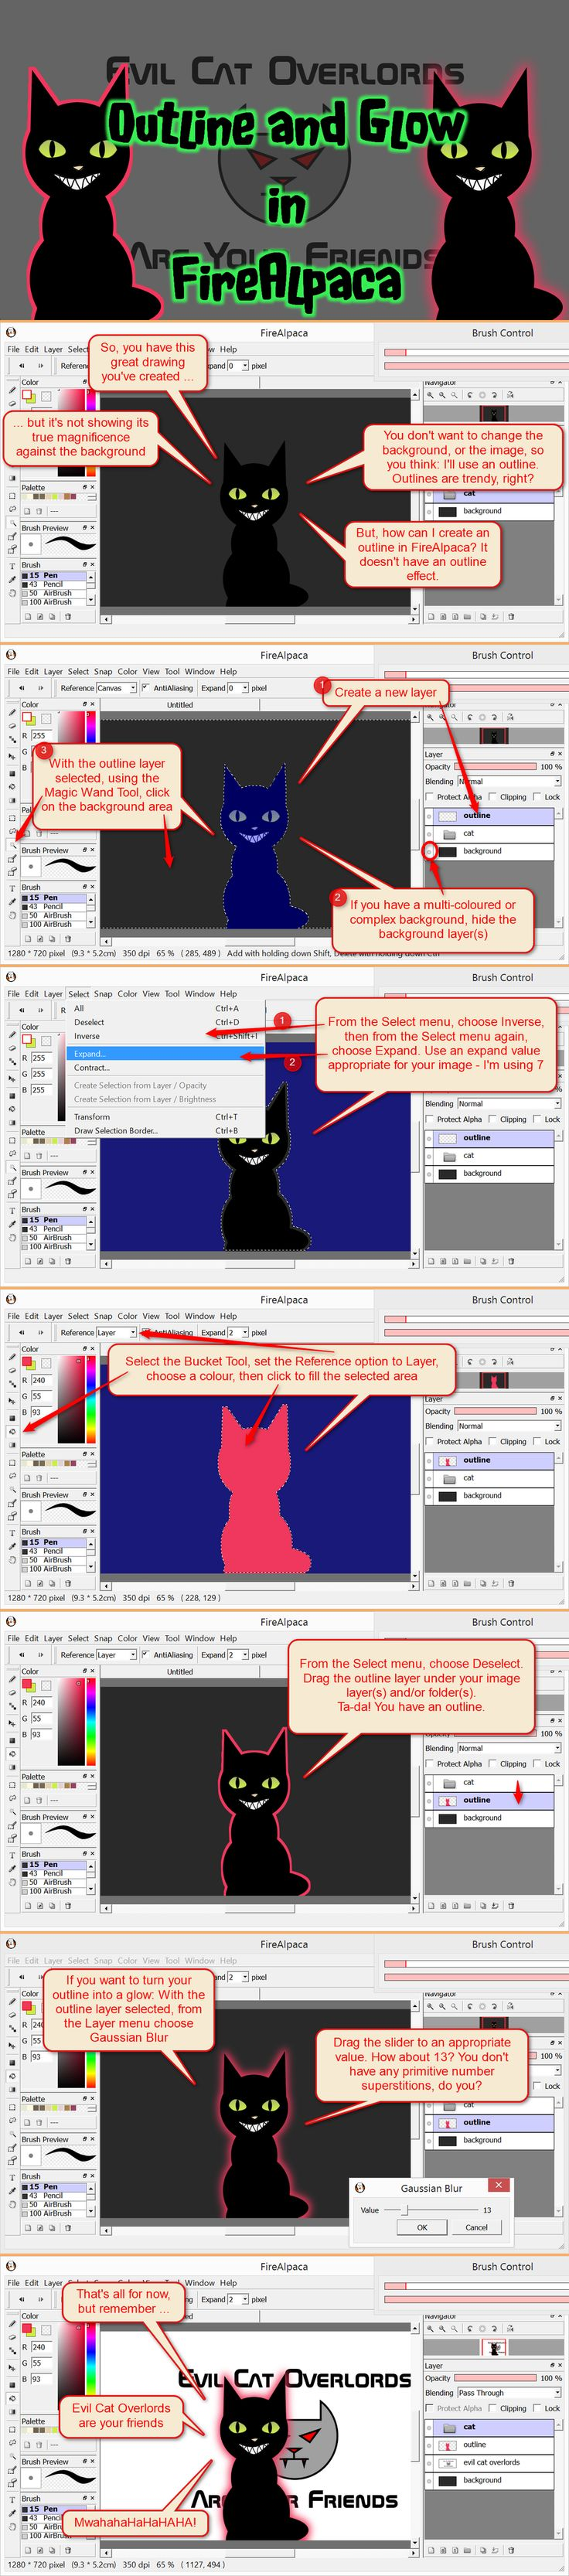 firealpaca how to start drawing